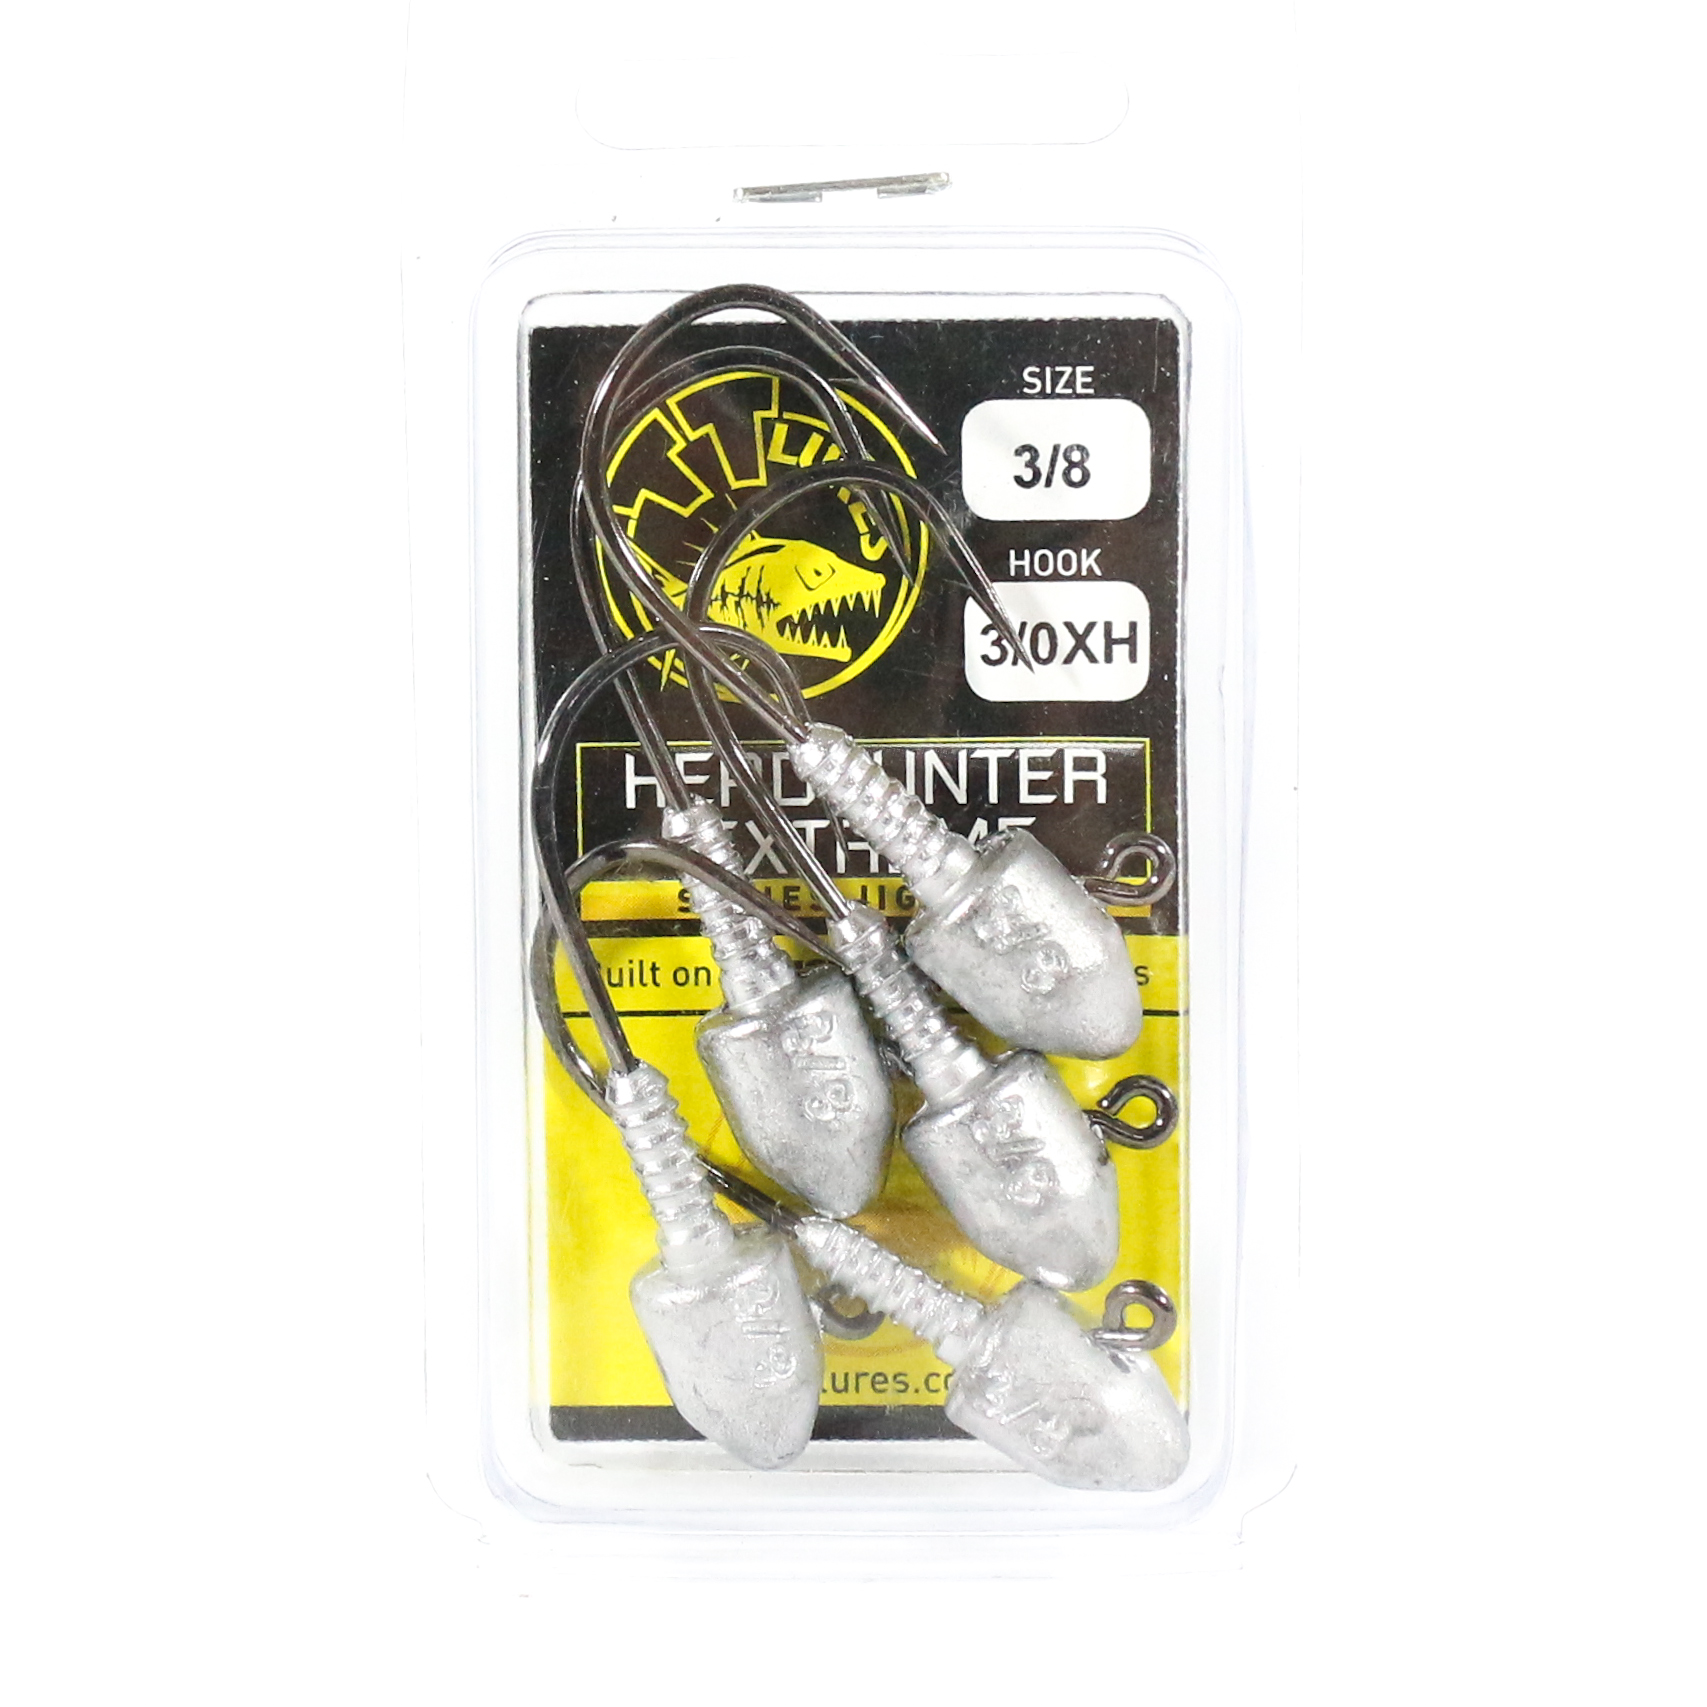 Tackle Tactics TT Head Hunter Extreme Jig Head 3/8 oz 3/0 XH 5 per pack (1302)